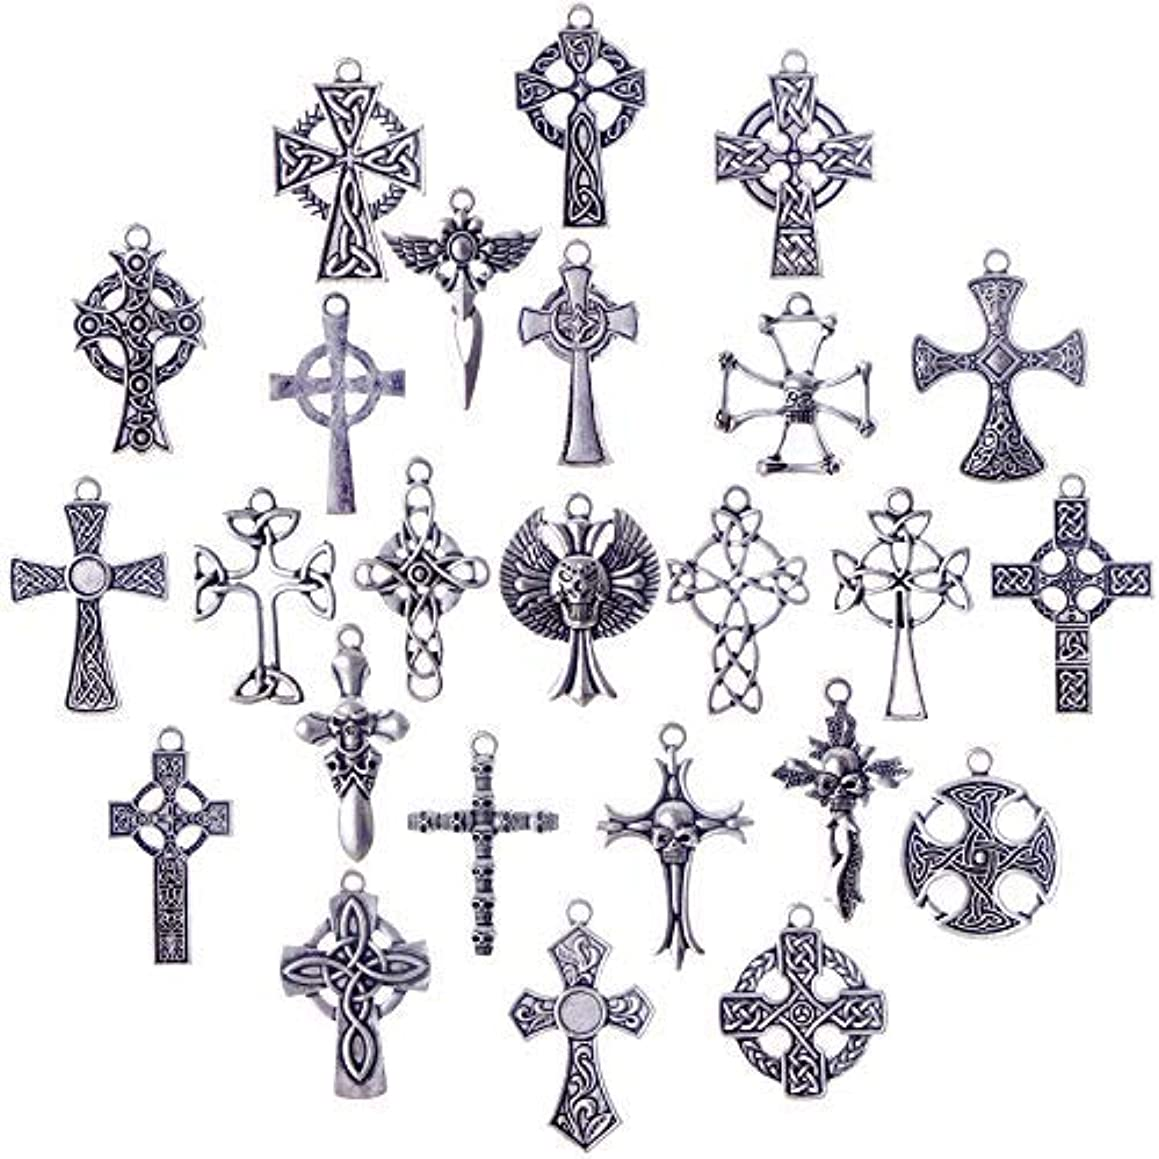 25 pcs Celtic Crosses Charms Assorted Pendants Jewelry Findings for Bracelets, Dangle Earrings, Necklace Jewelry Making